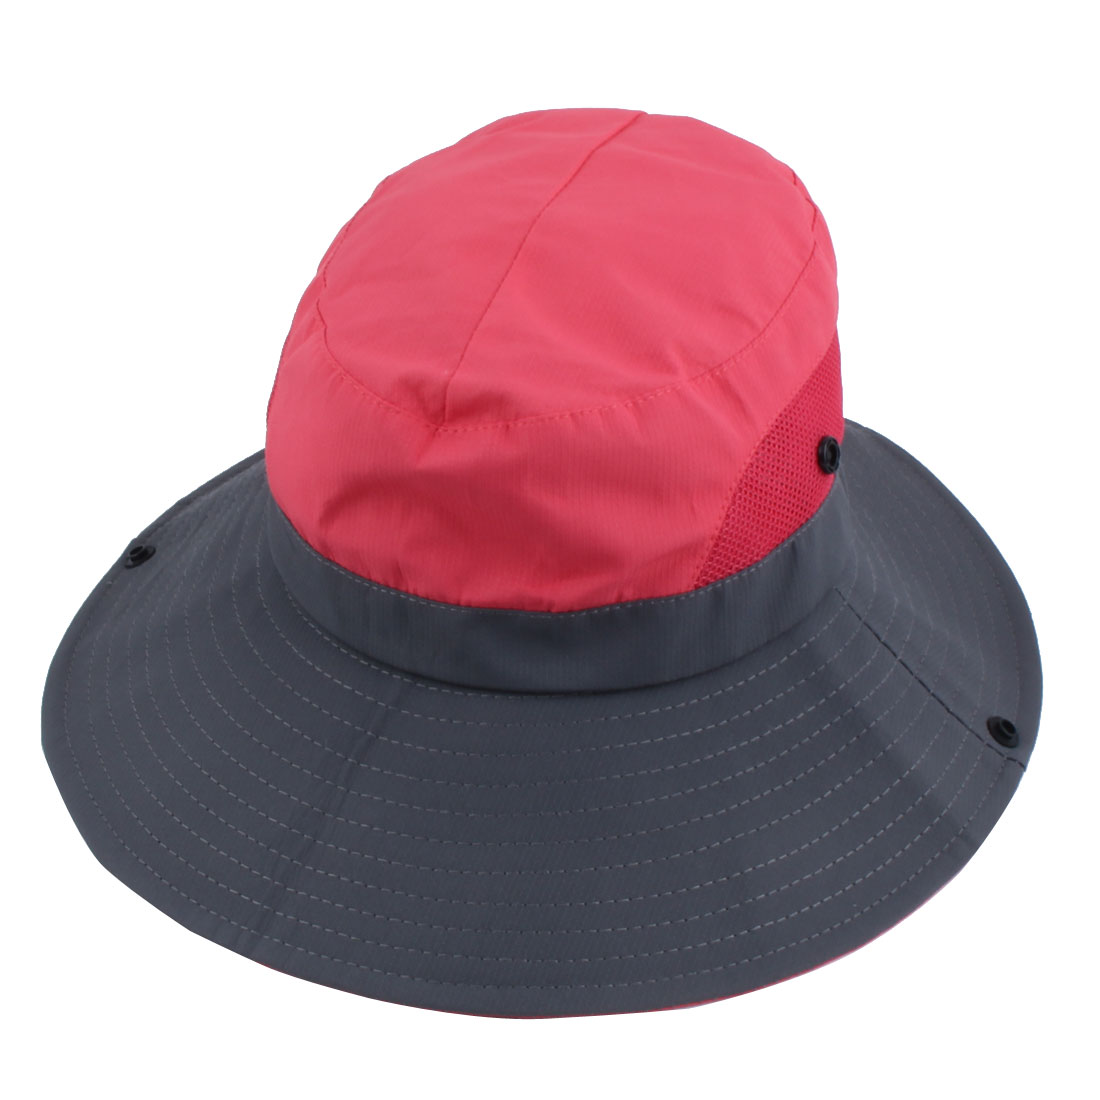 Fisherman Polyester Outdoor Sports Adjustable Strap Wide Brim Sun Protector Boonie Summer Cap Fishing Hat Watermelon Red